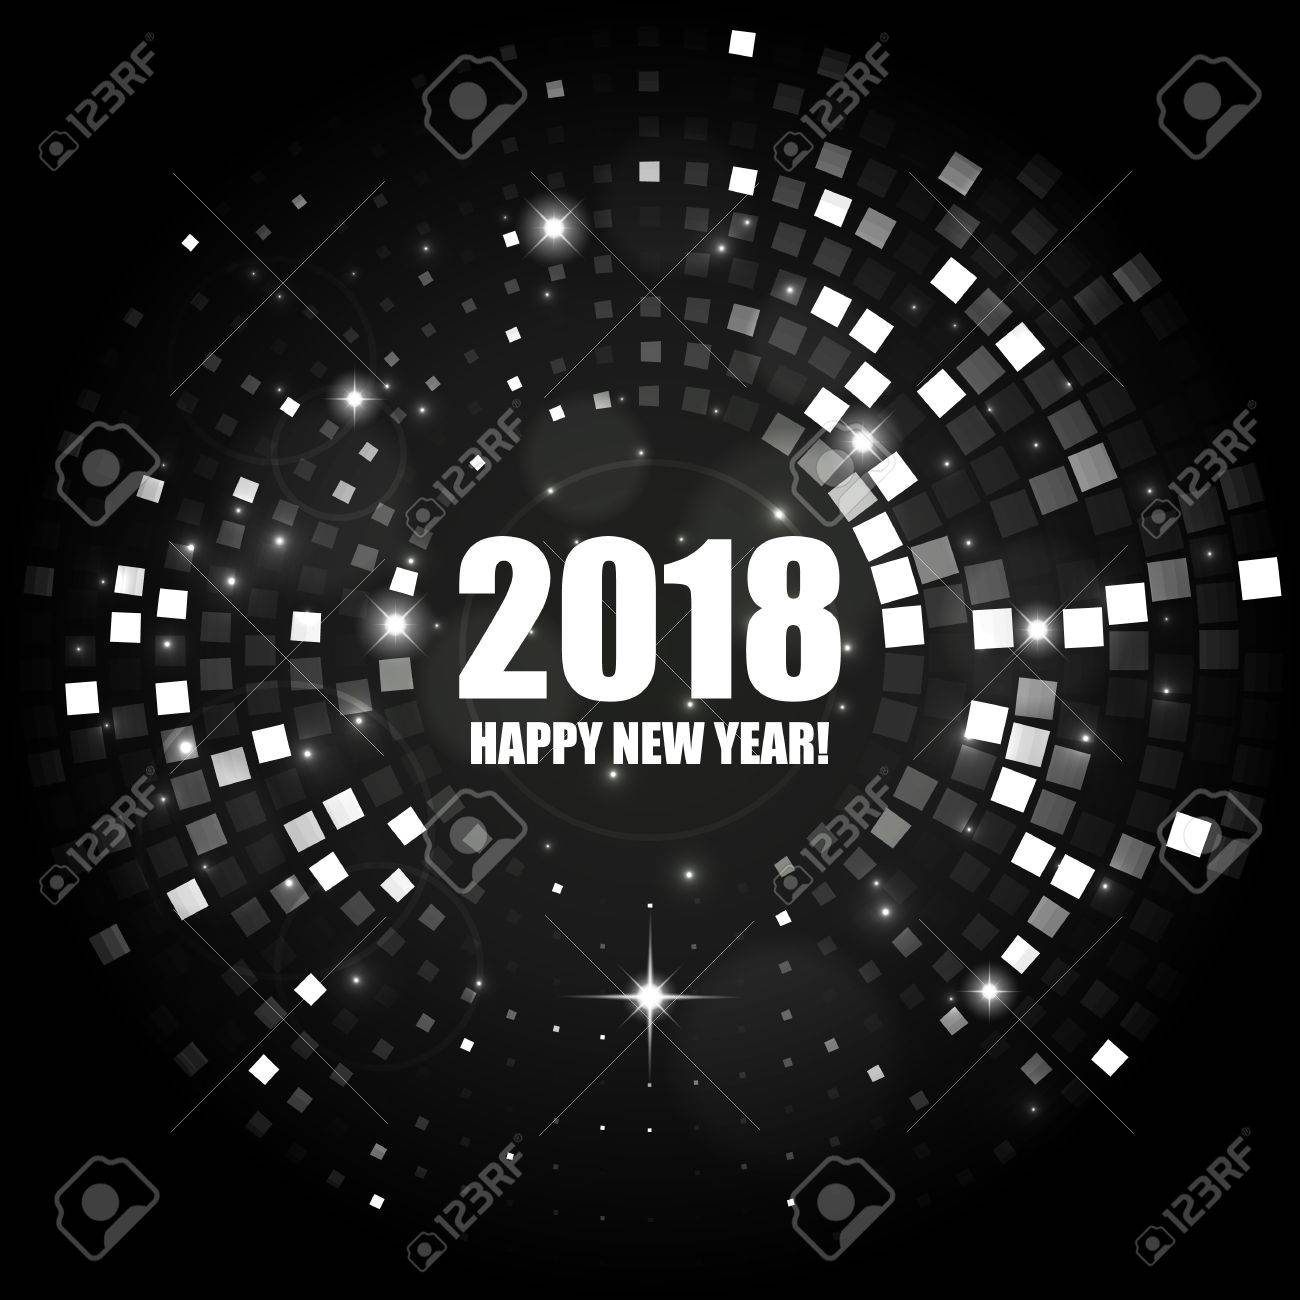 happy new year 2018 abstract black and white light background for your design stock vector